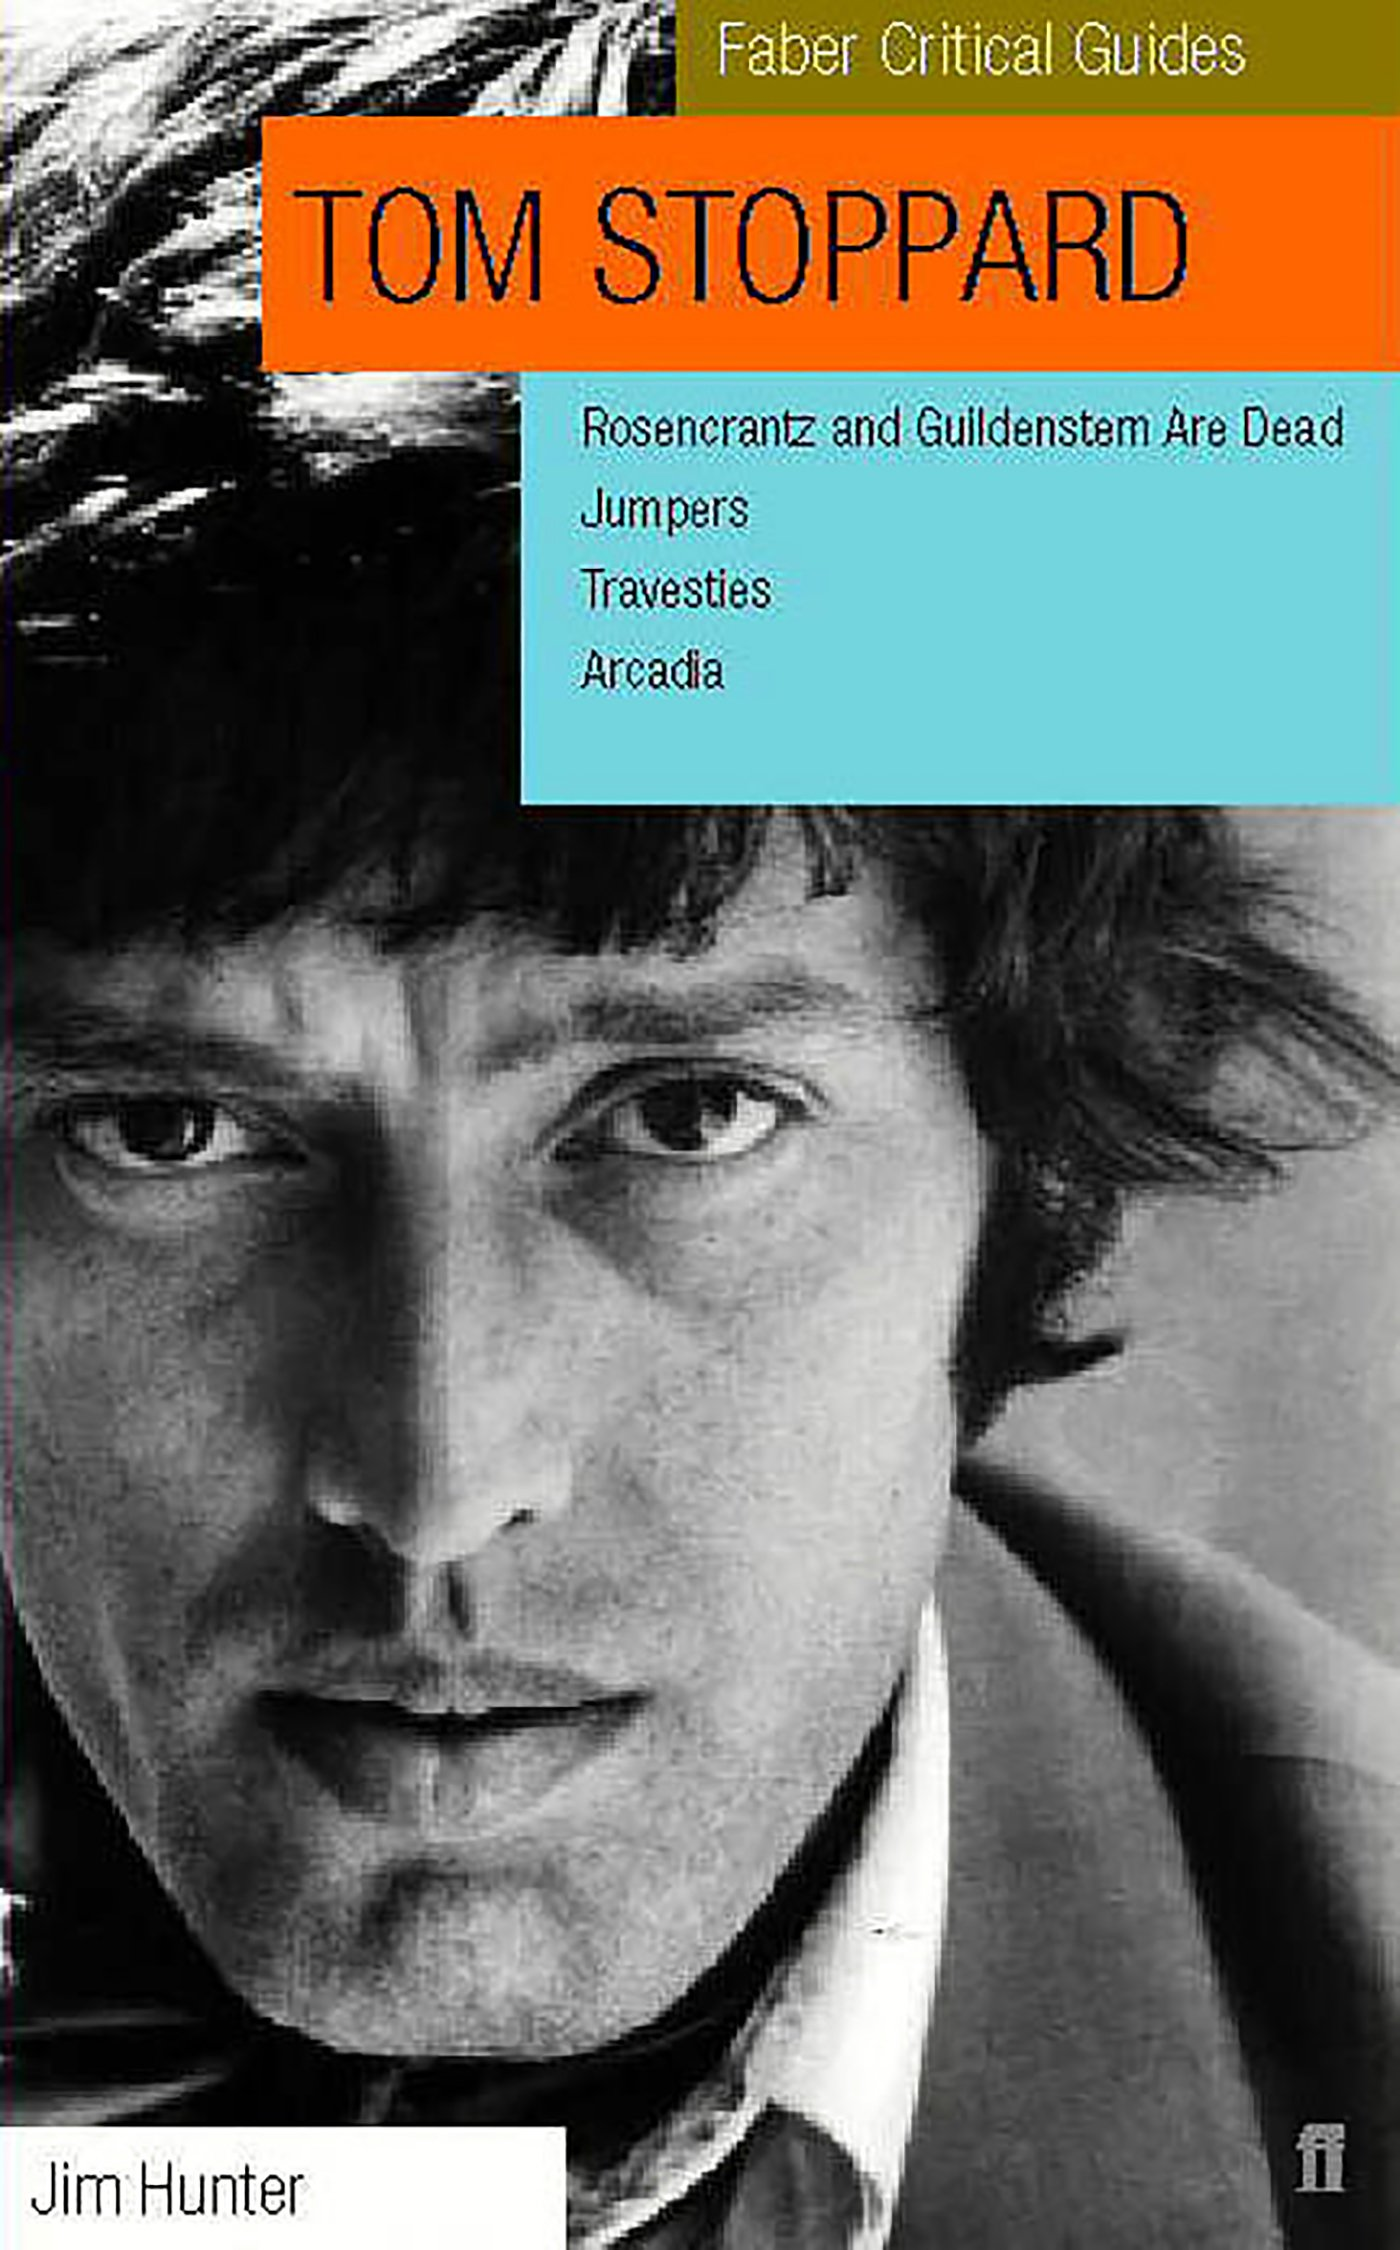 Tom Stoppard: A Faber Critical Guide: Rosencrantz and Guildenstern Are Dead, Jumpers, Travesties, Arcadia (Faber Critical Guides) pdf